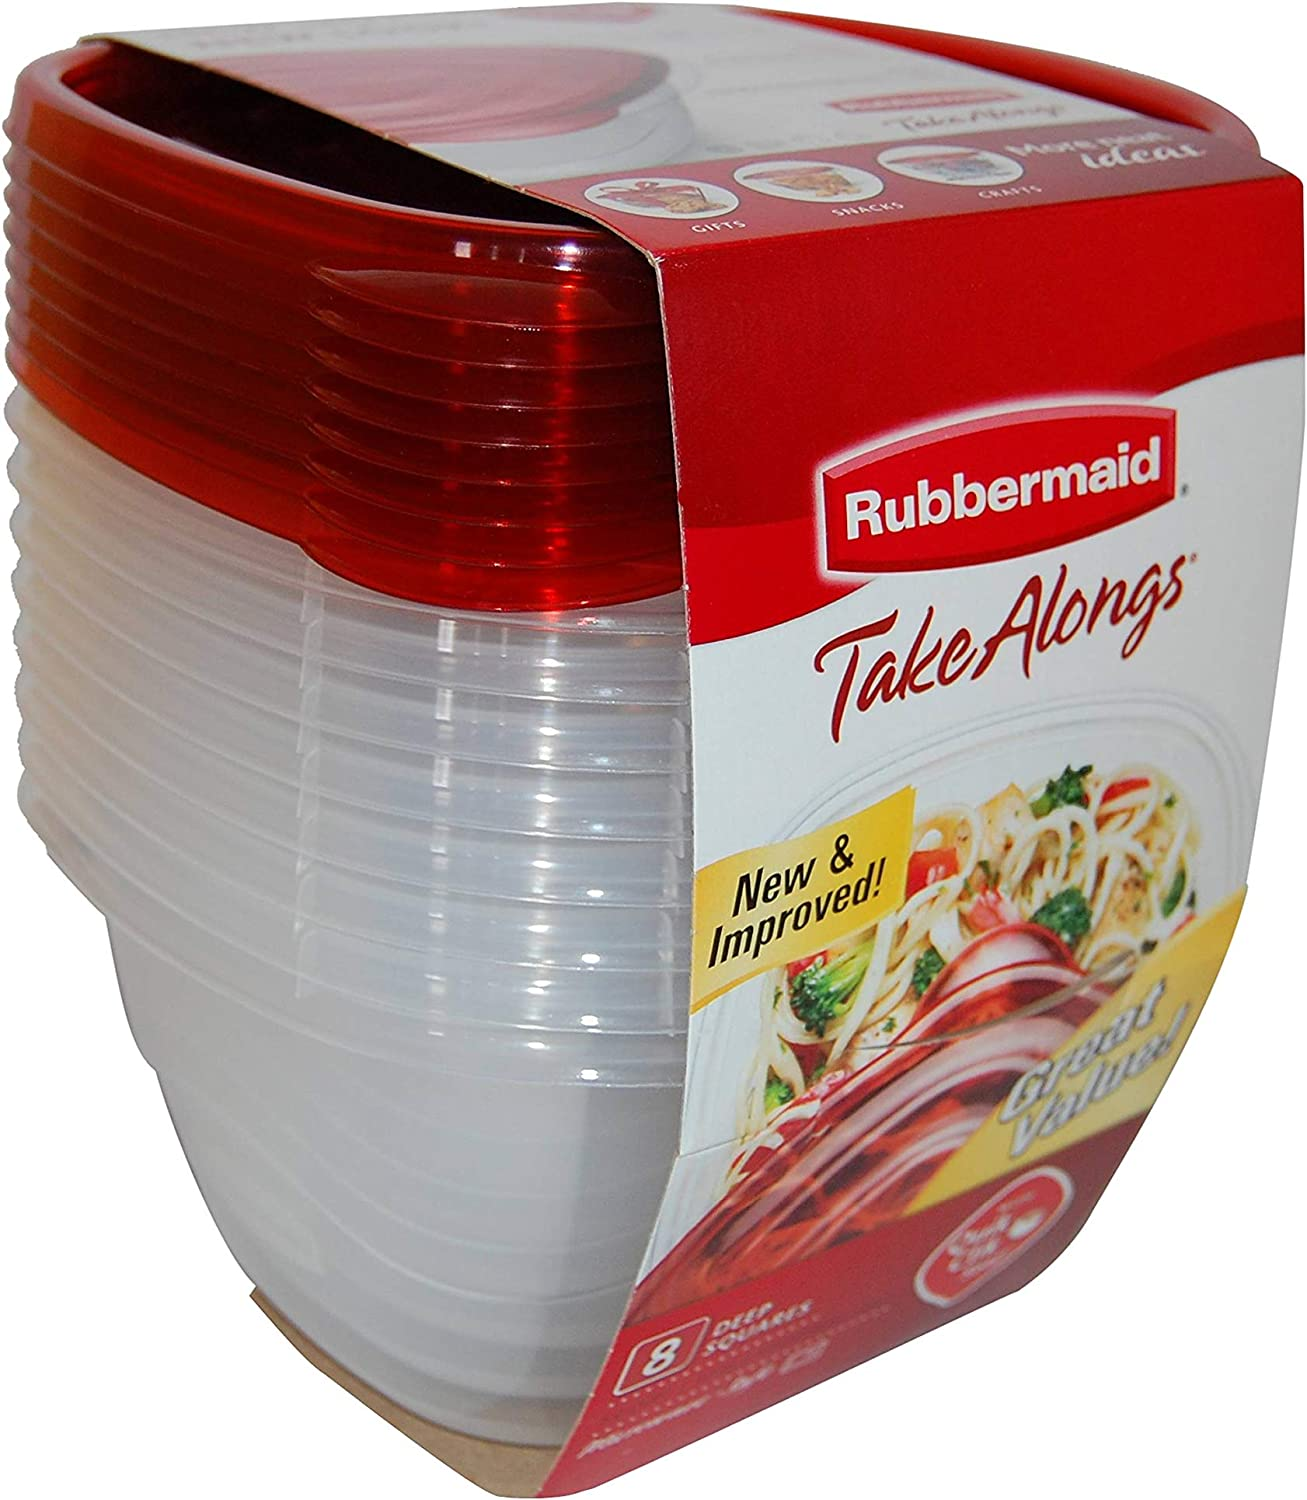 Rubbermaid TakeAlongs Deep Square Food Storage Containers, 5.2 cups, 8 pack